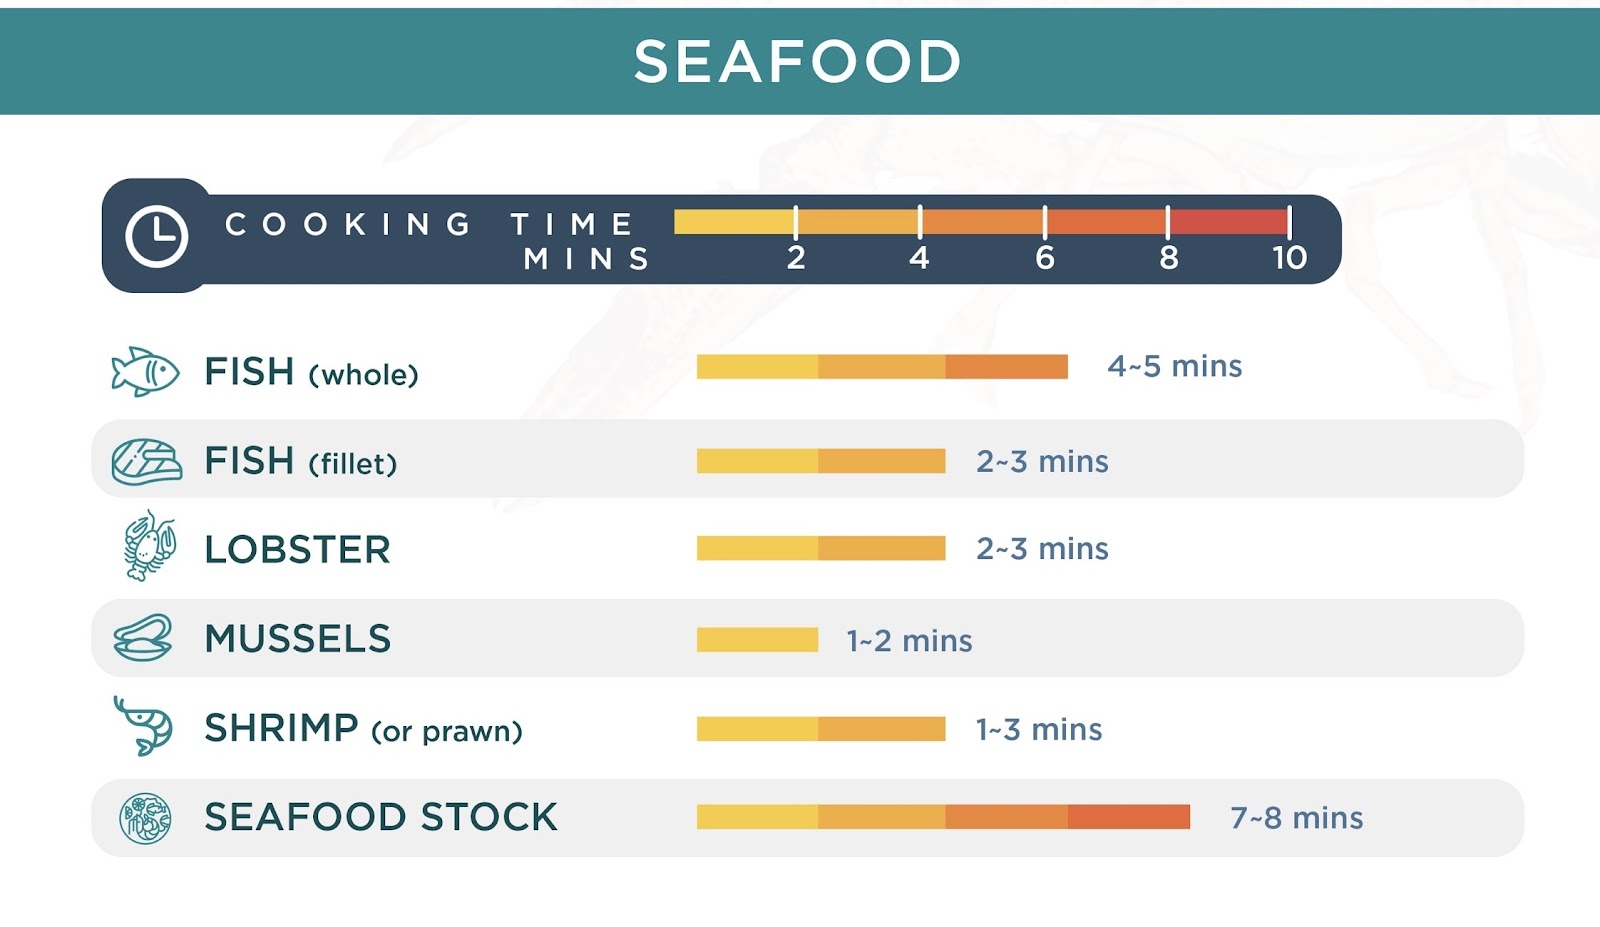 Instant Pot Seafood Cooking Times